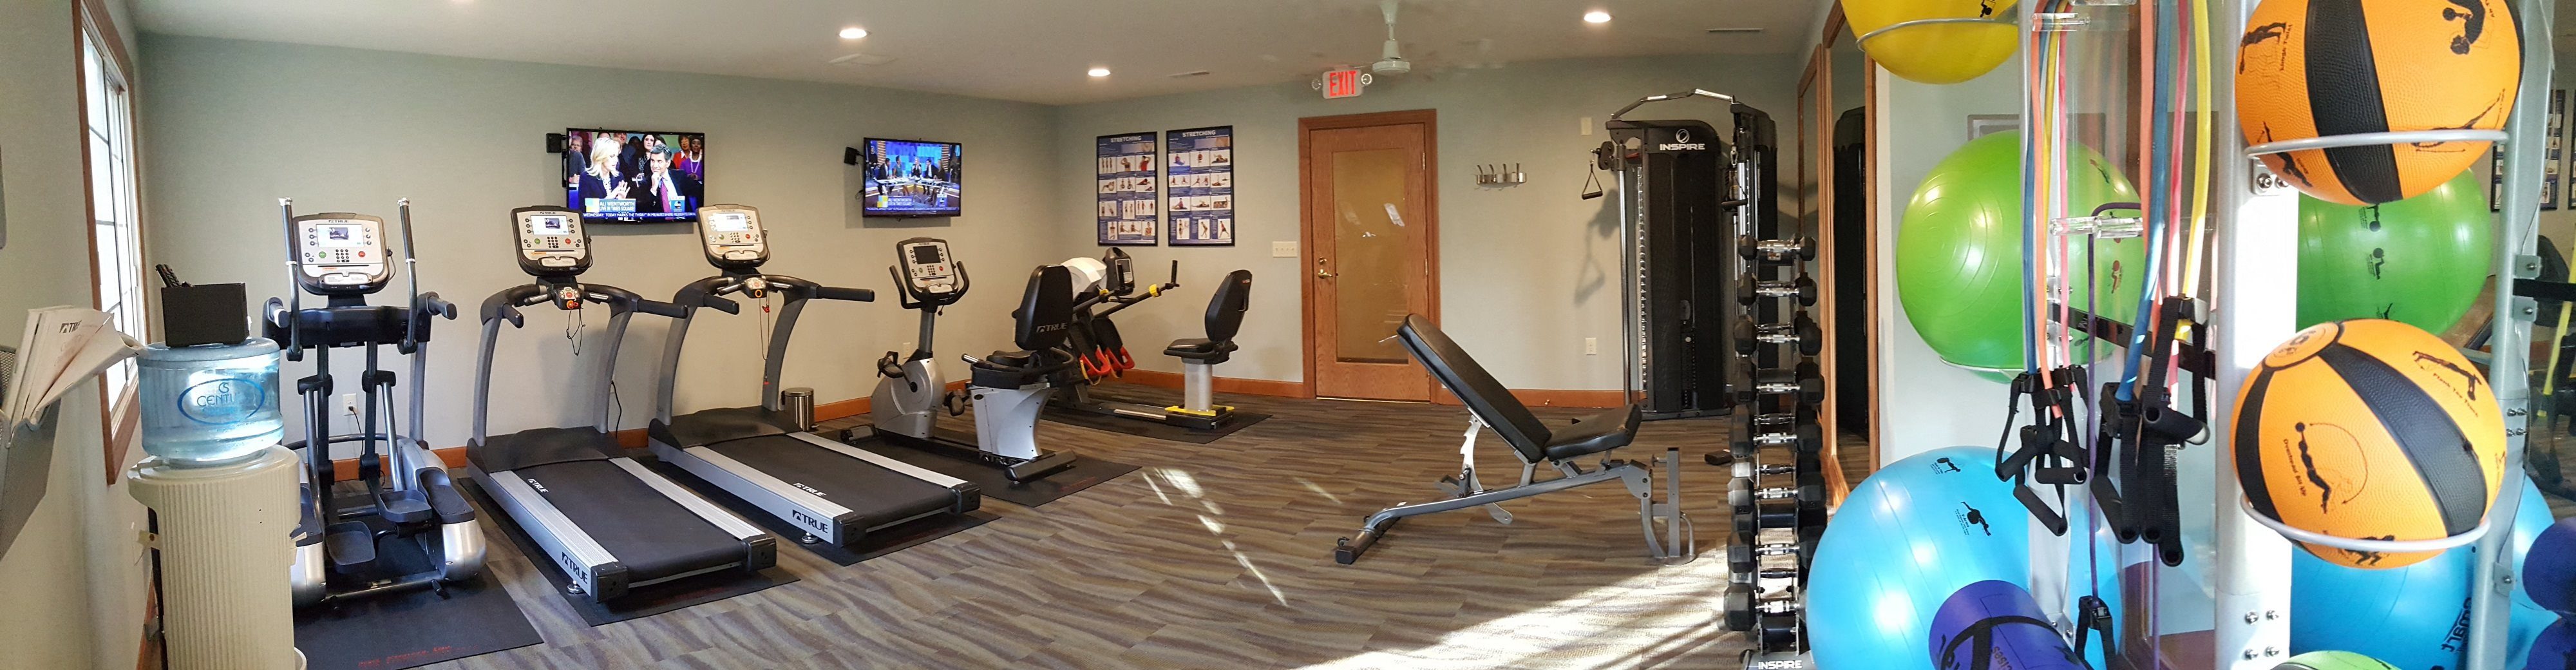 Fully Equipped Fitness Center at Brookfield Highlands Apartments 55+, 20825 George Hunt Circle, 53186